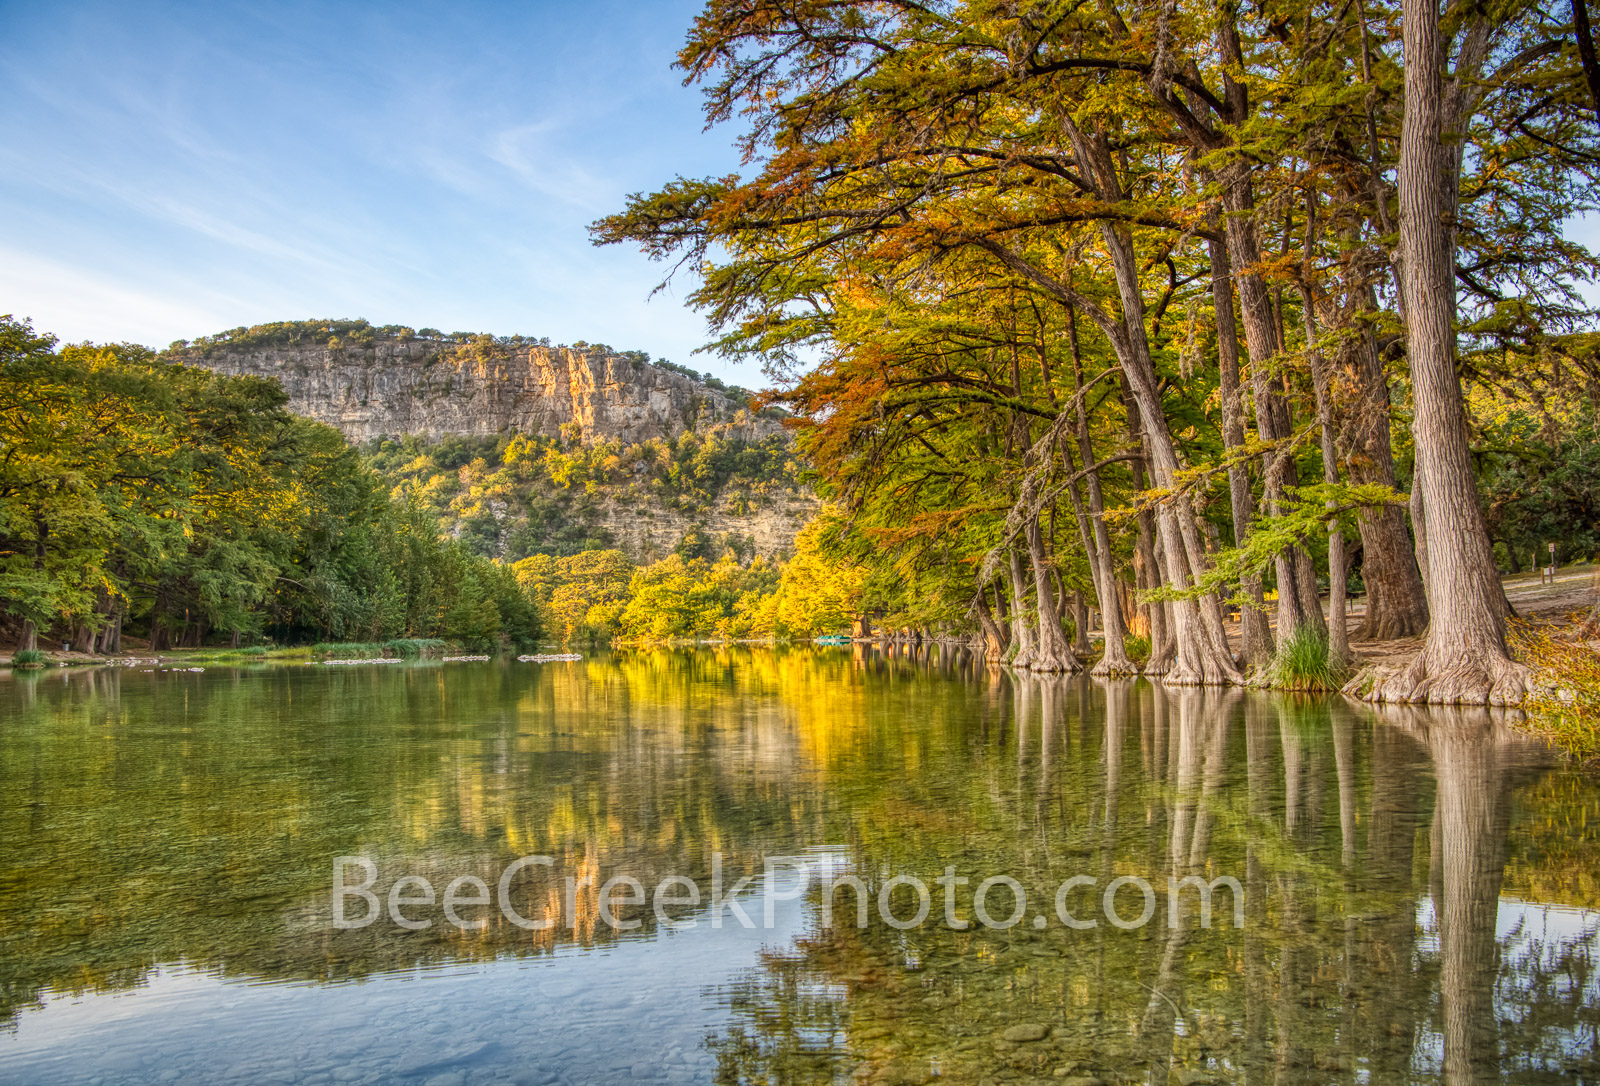 Serenity Along the Frio - We capture this on our first trip to the Texas hill country this year to try and capture the fall colors...